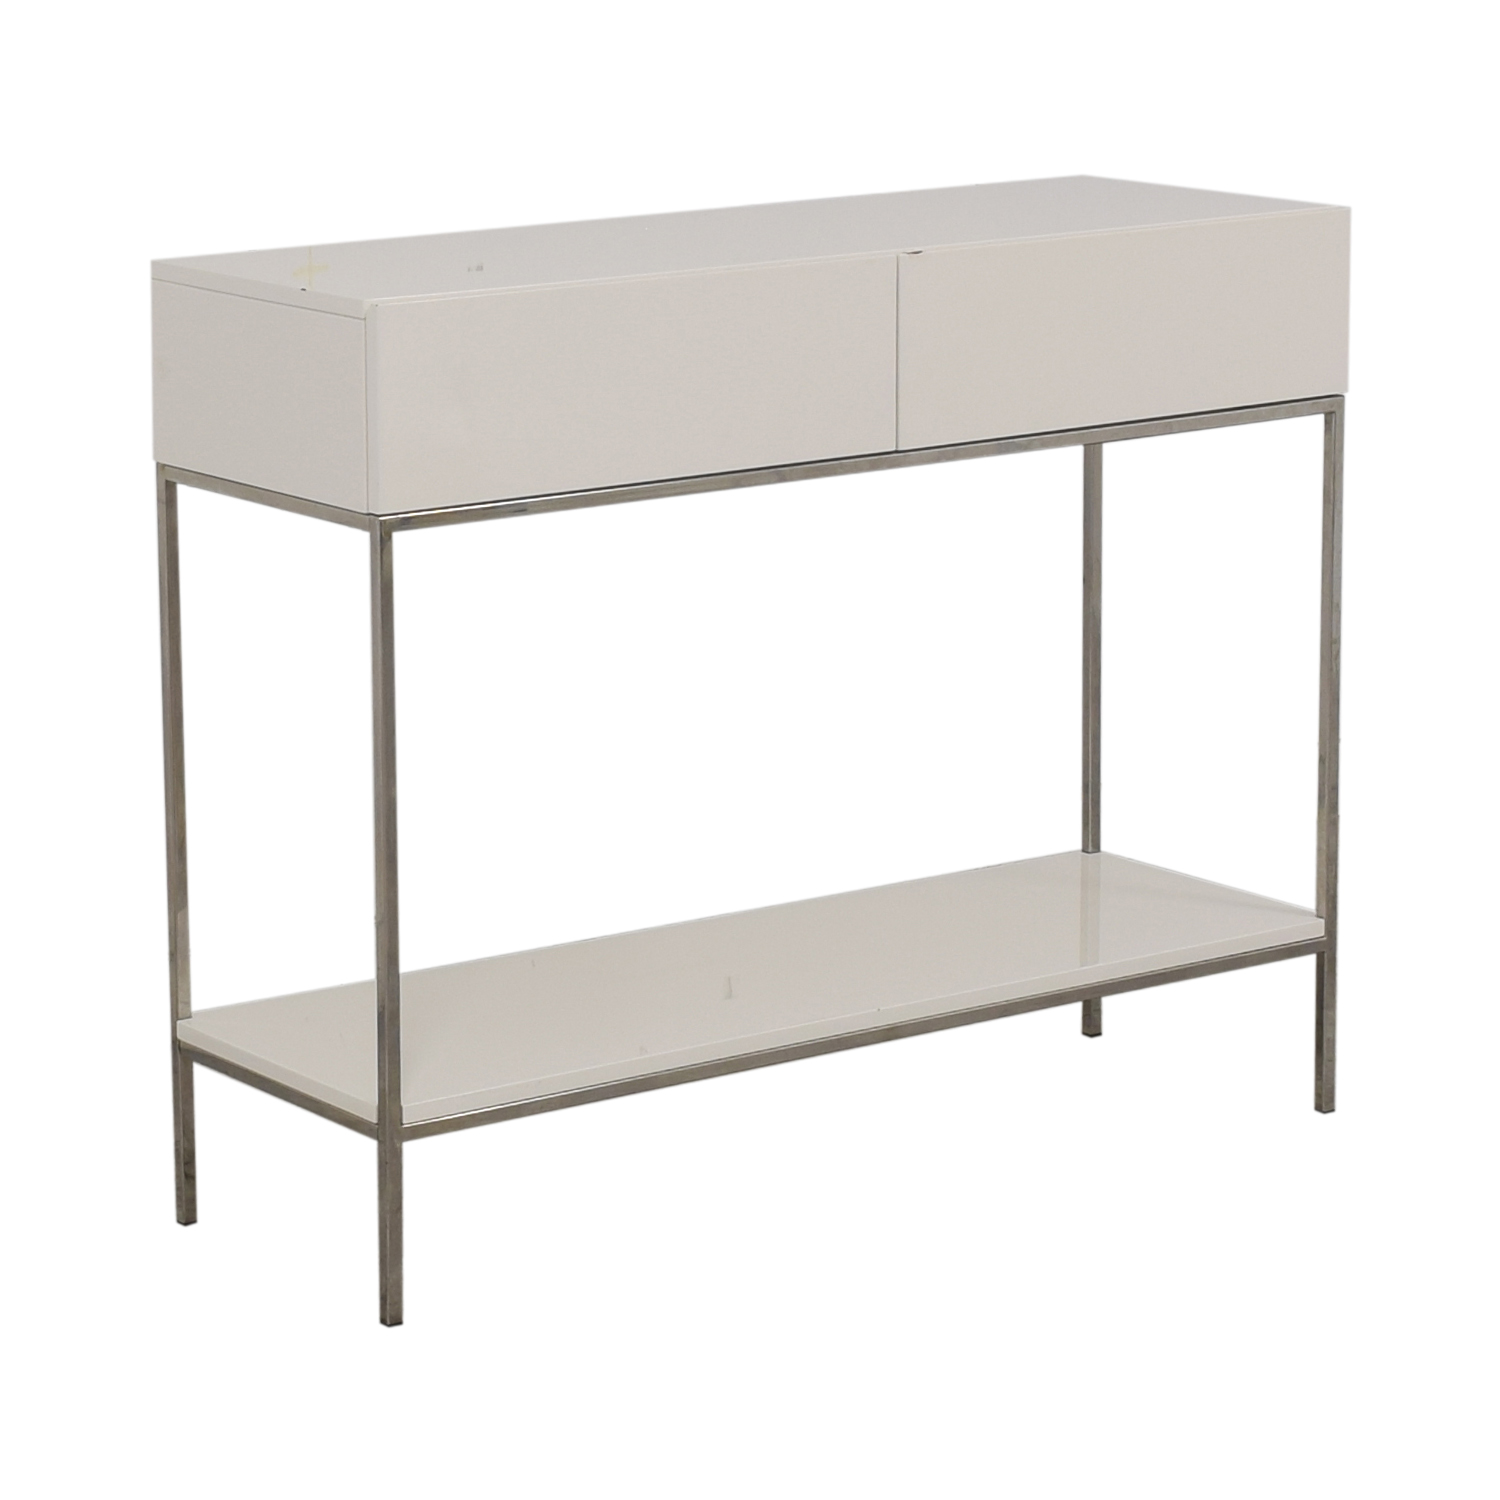 West Elm West Elm Industrial Storage Console second hand